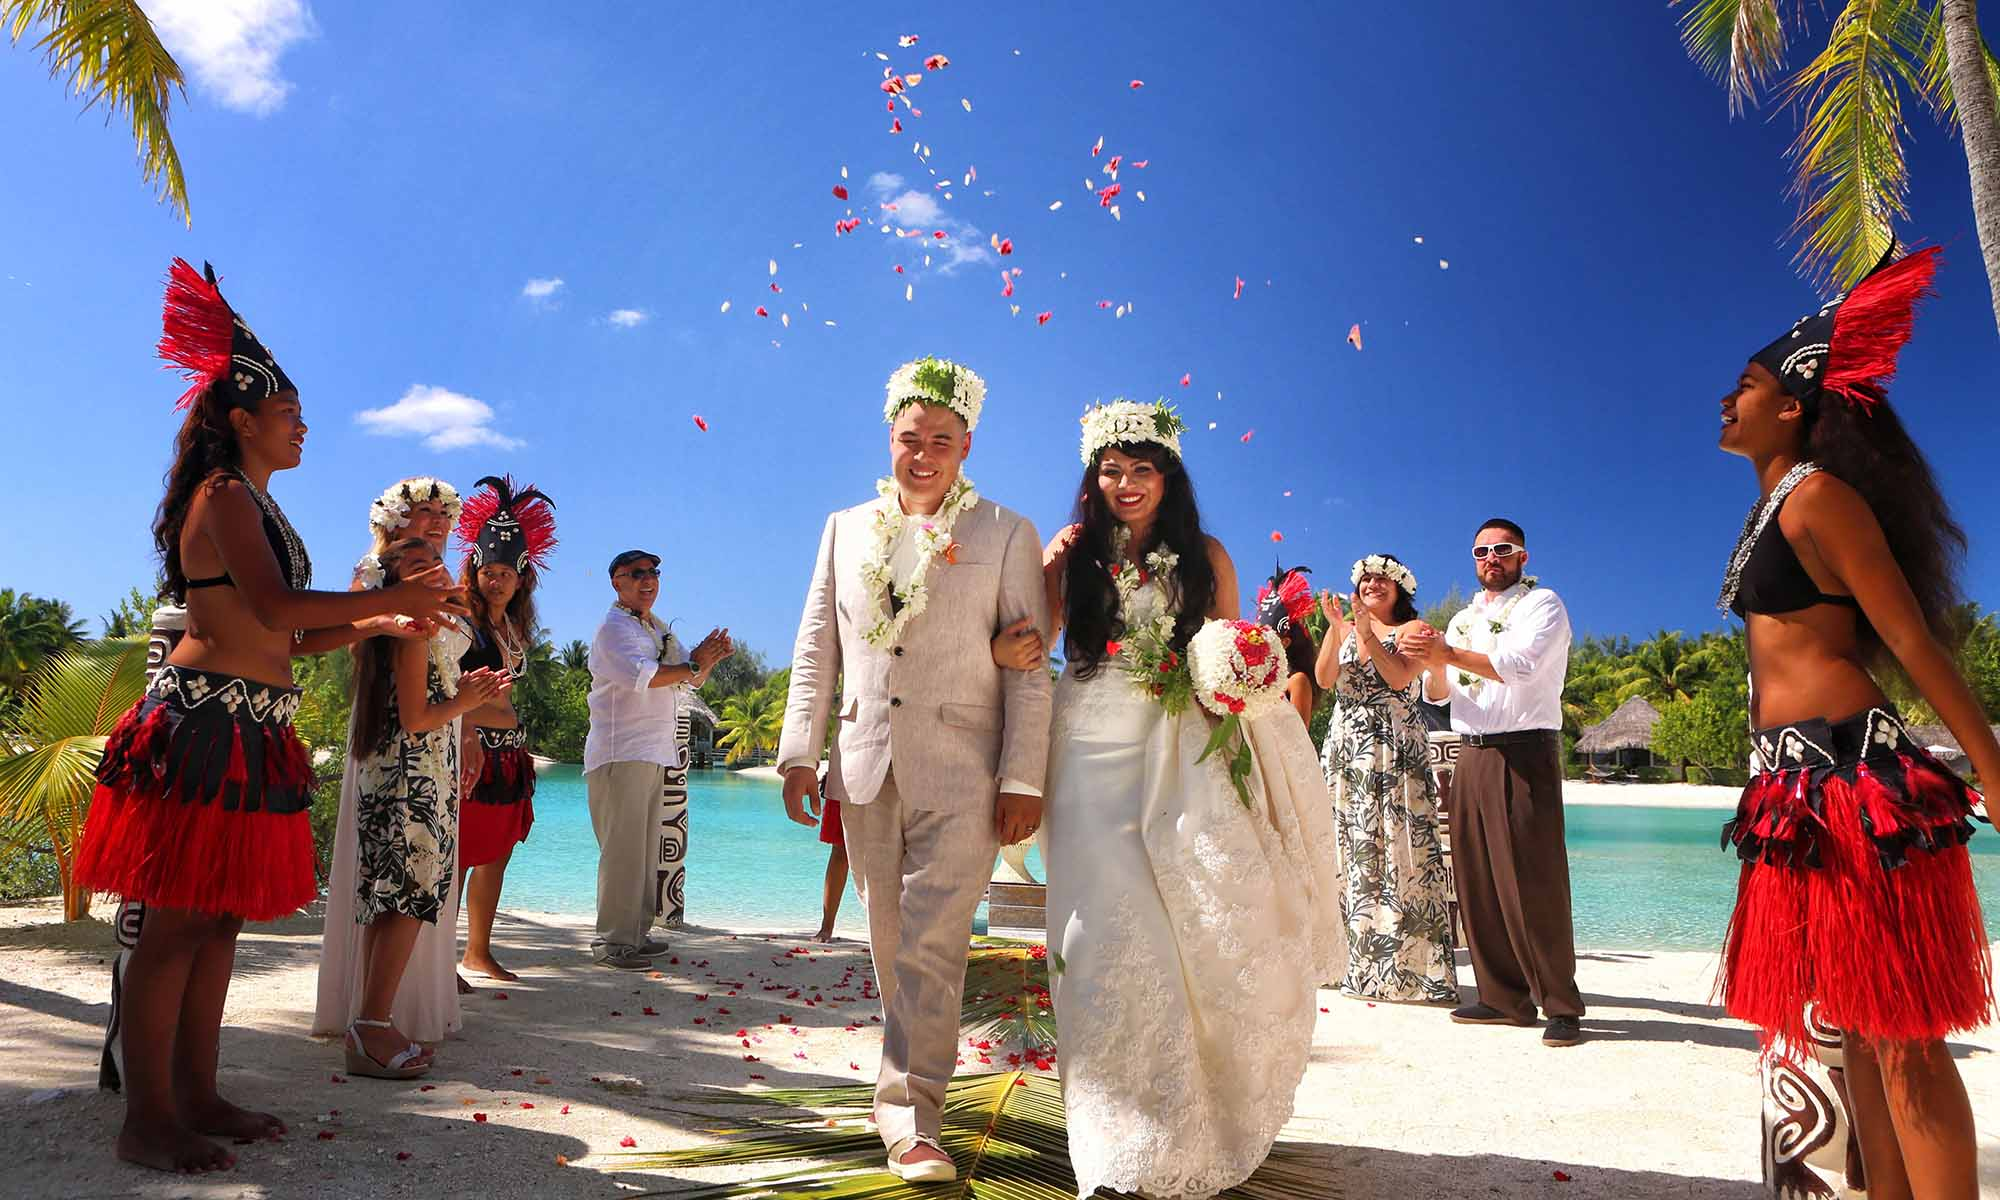 Le Meridien Bora Bora, Traditional Polynesian Wedding Ceremony